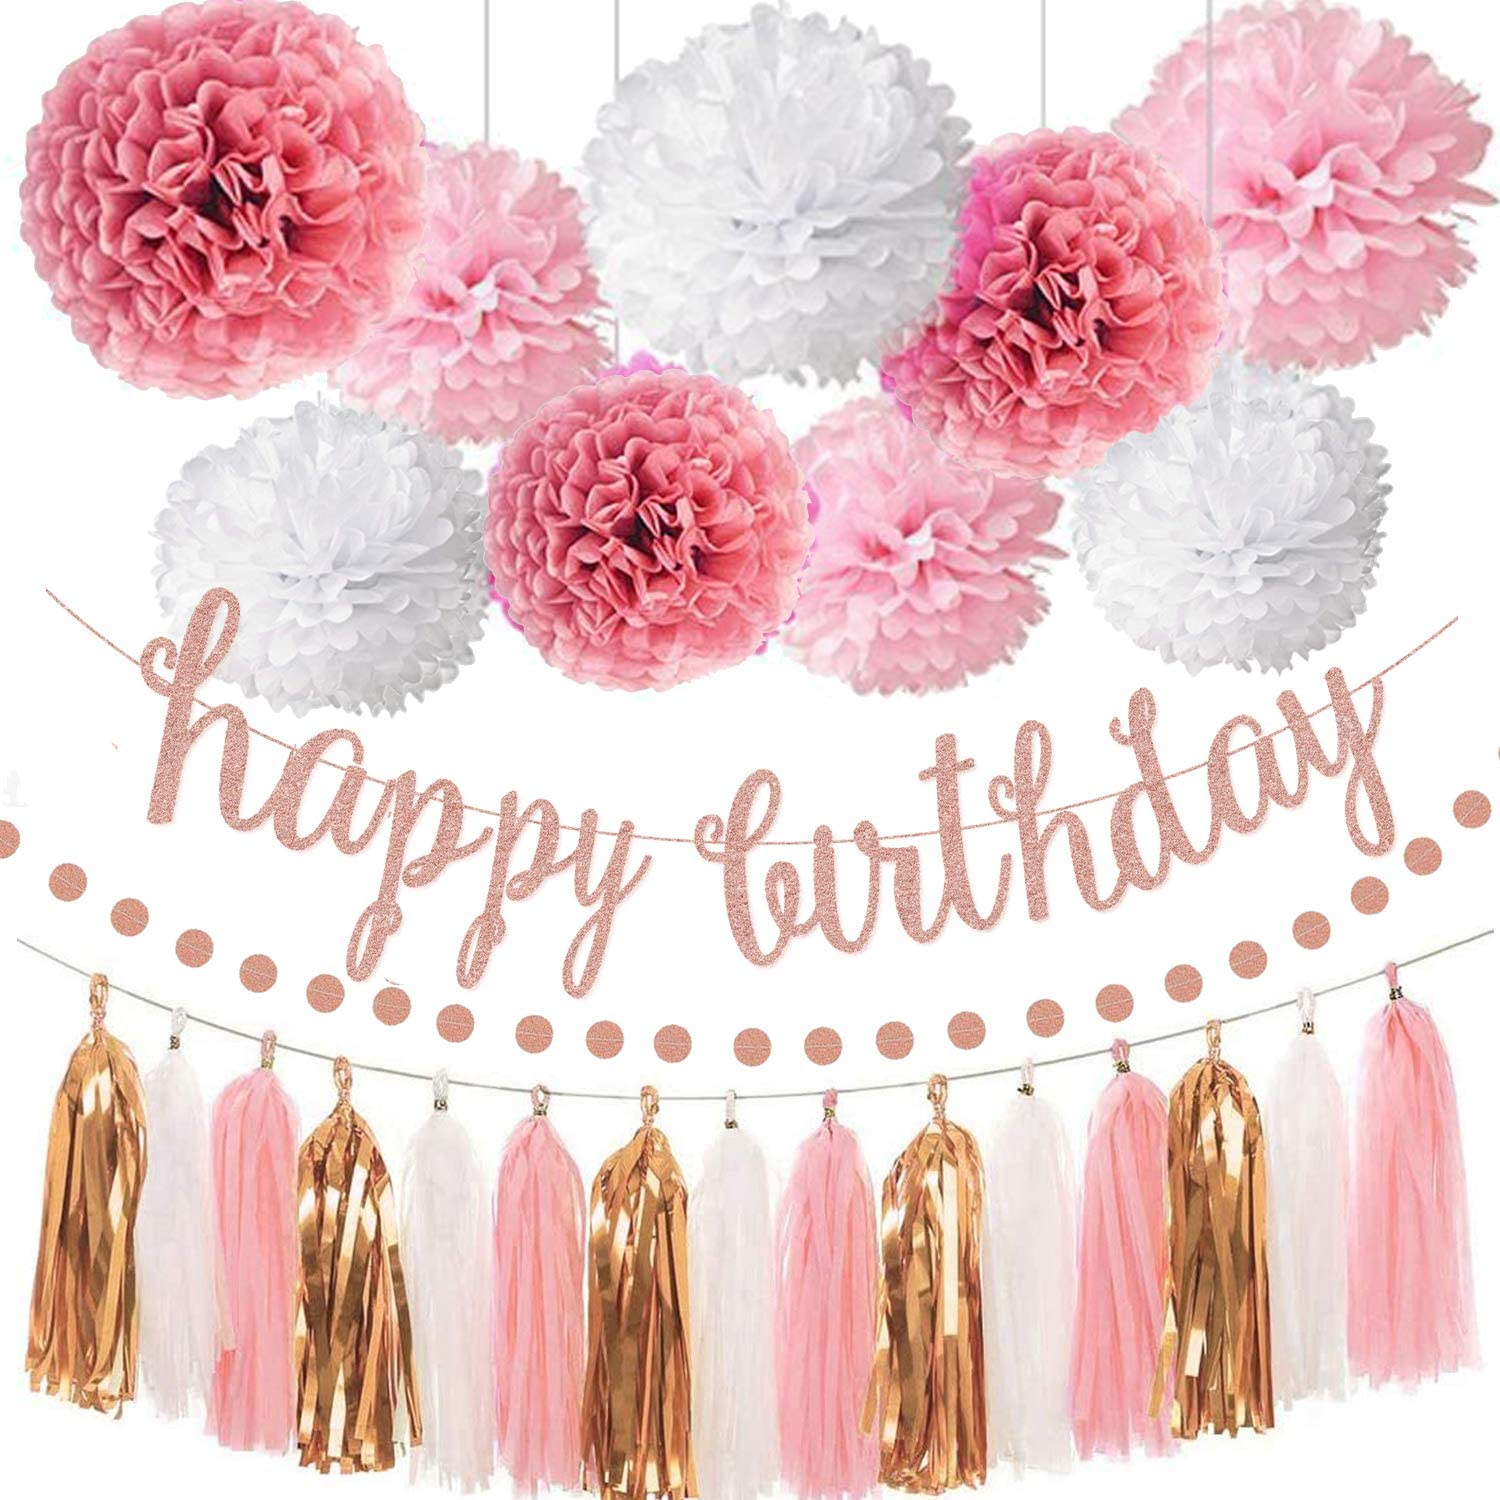 Pink Rose Gold Birthday Party Decorations Set - Rose Gold Glittery Happy Birthday banner, Tissue Paper Pom, Circle Dots Garland and Tassel Garland for Birthday Party Decorations